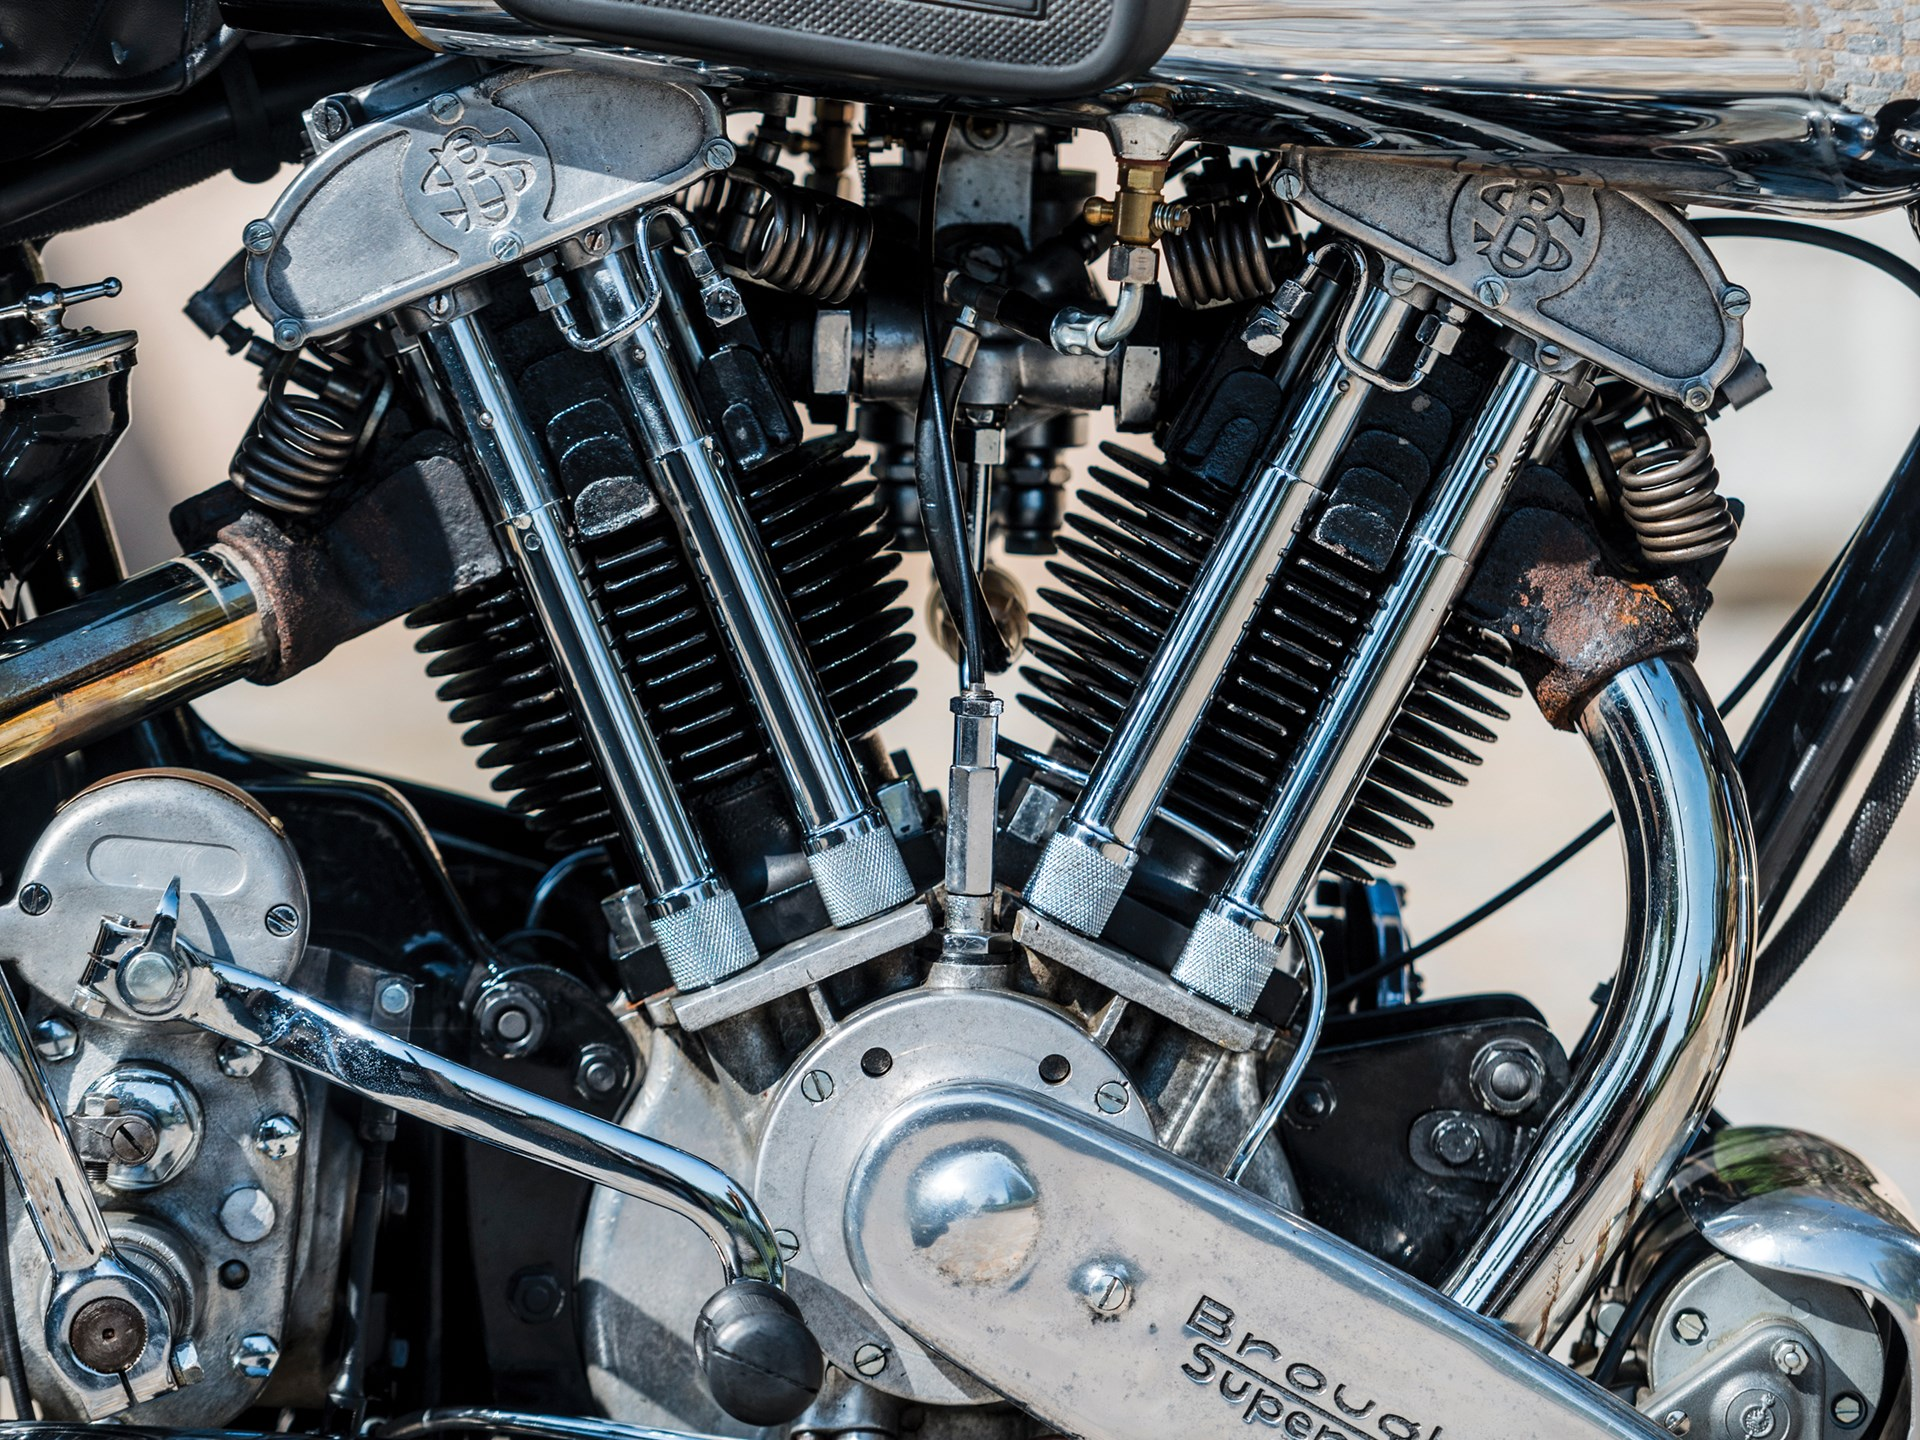 1936 Brough Superior SS100 engine